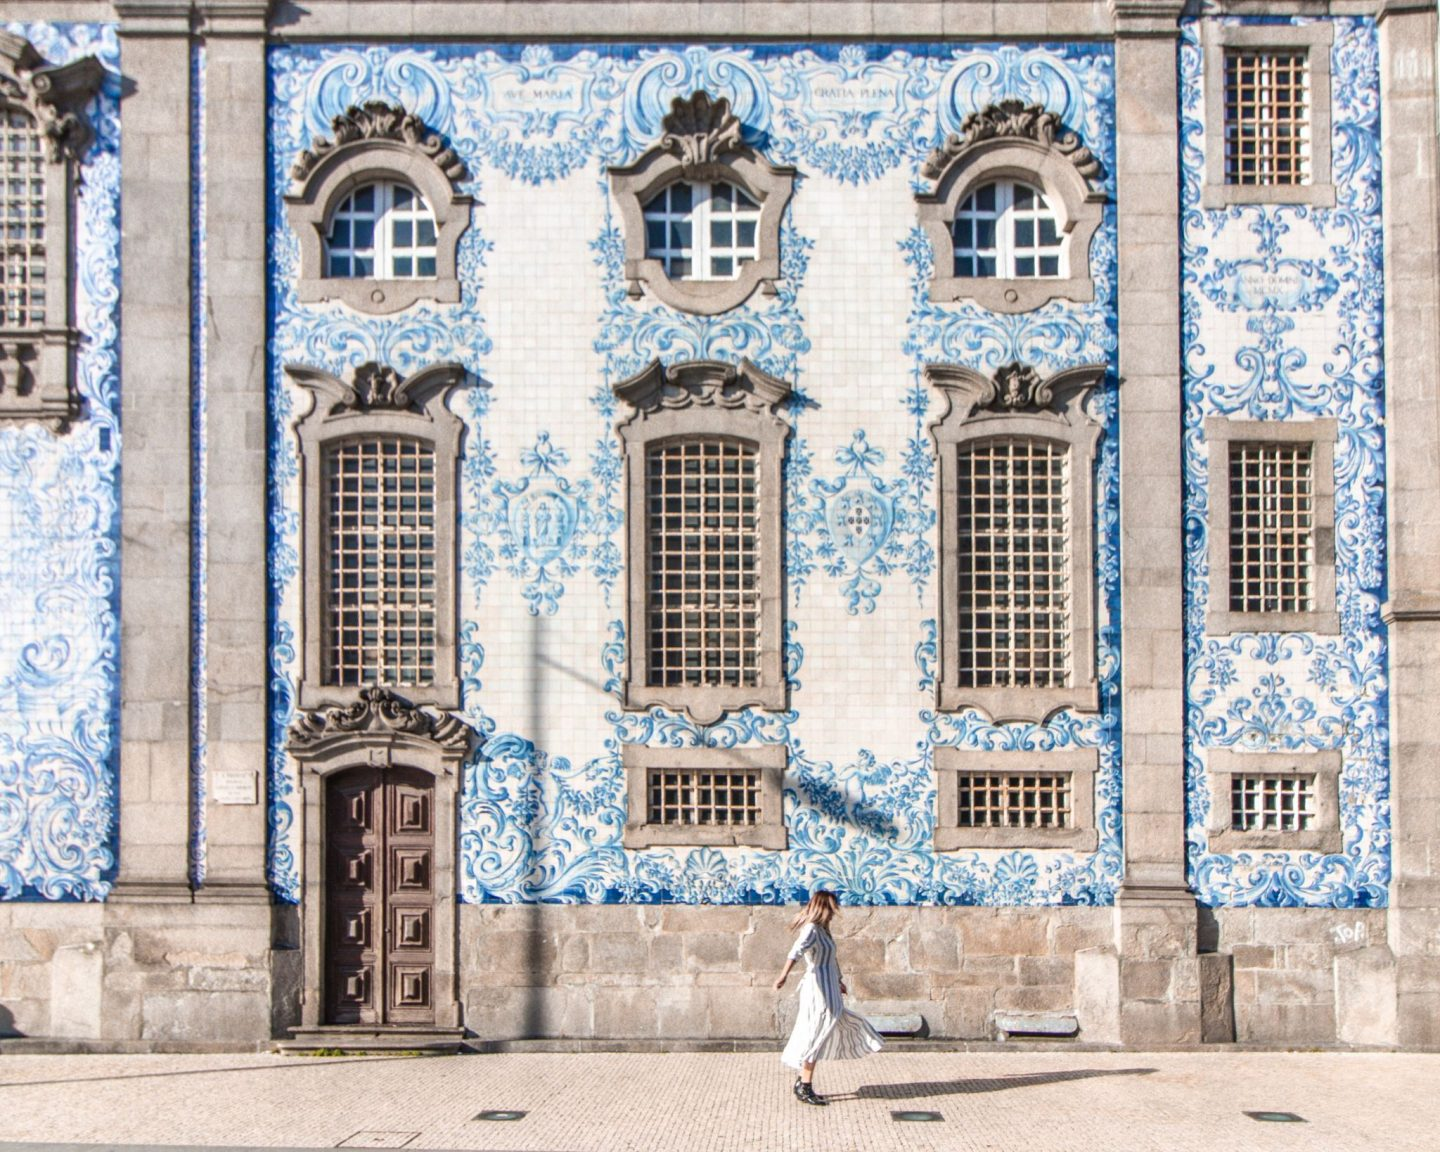 20 Best Instagram Spots In Porto Including Hidden Gems Diana Miaus